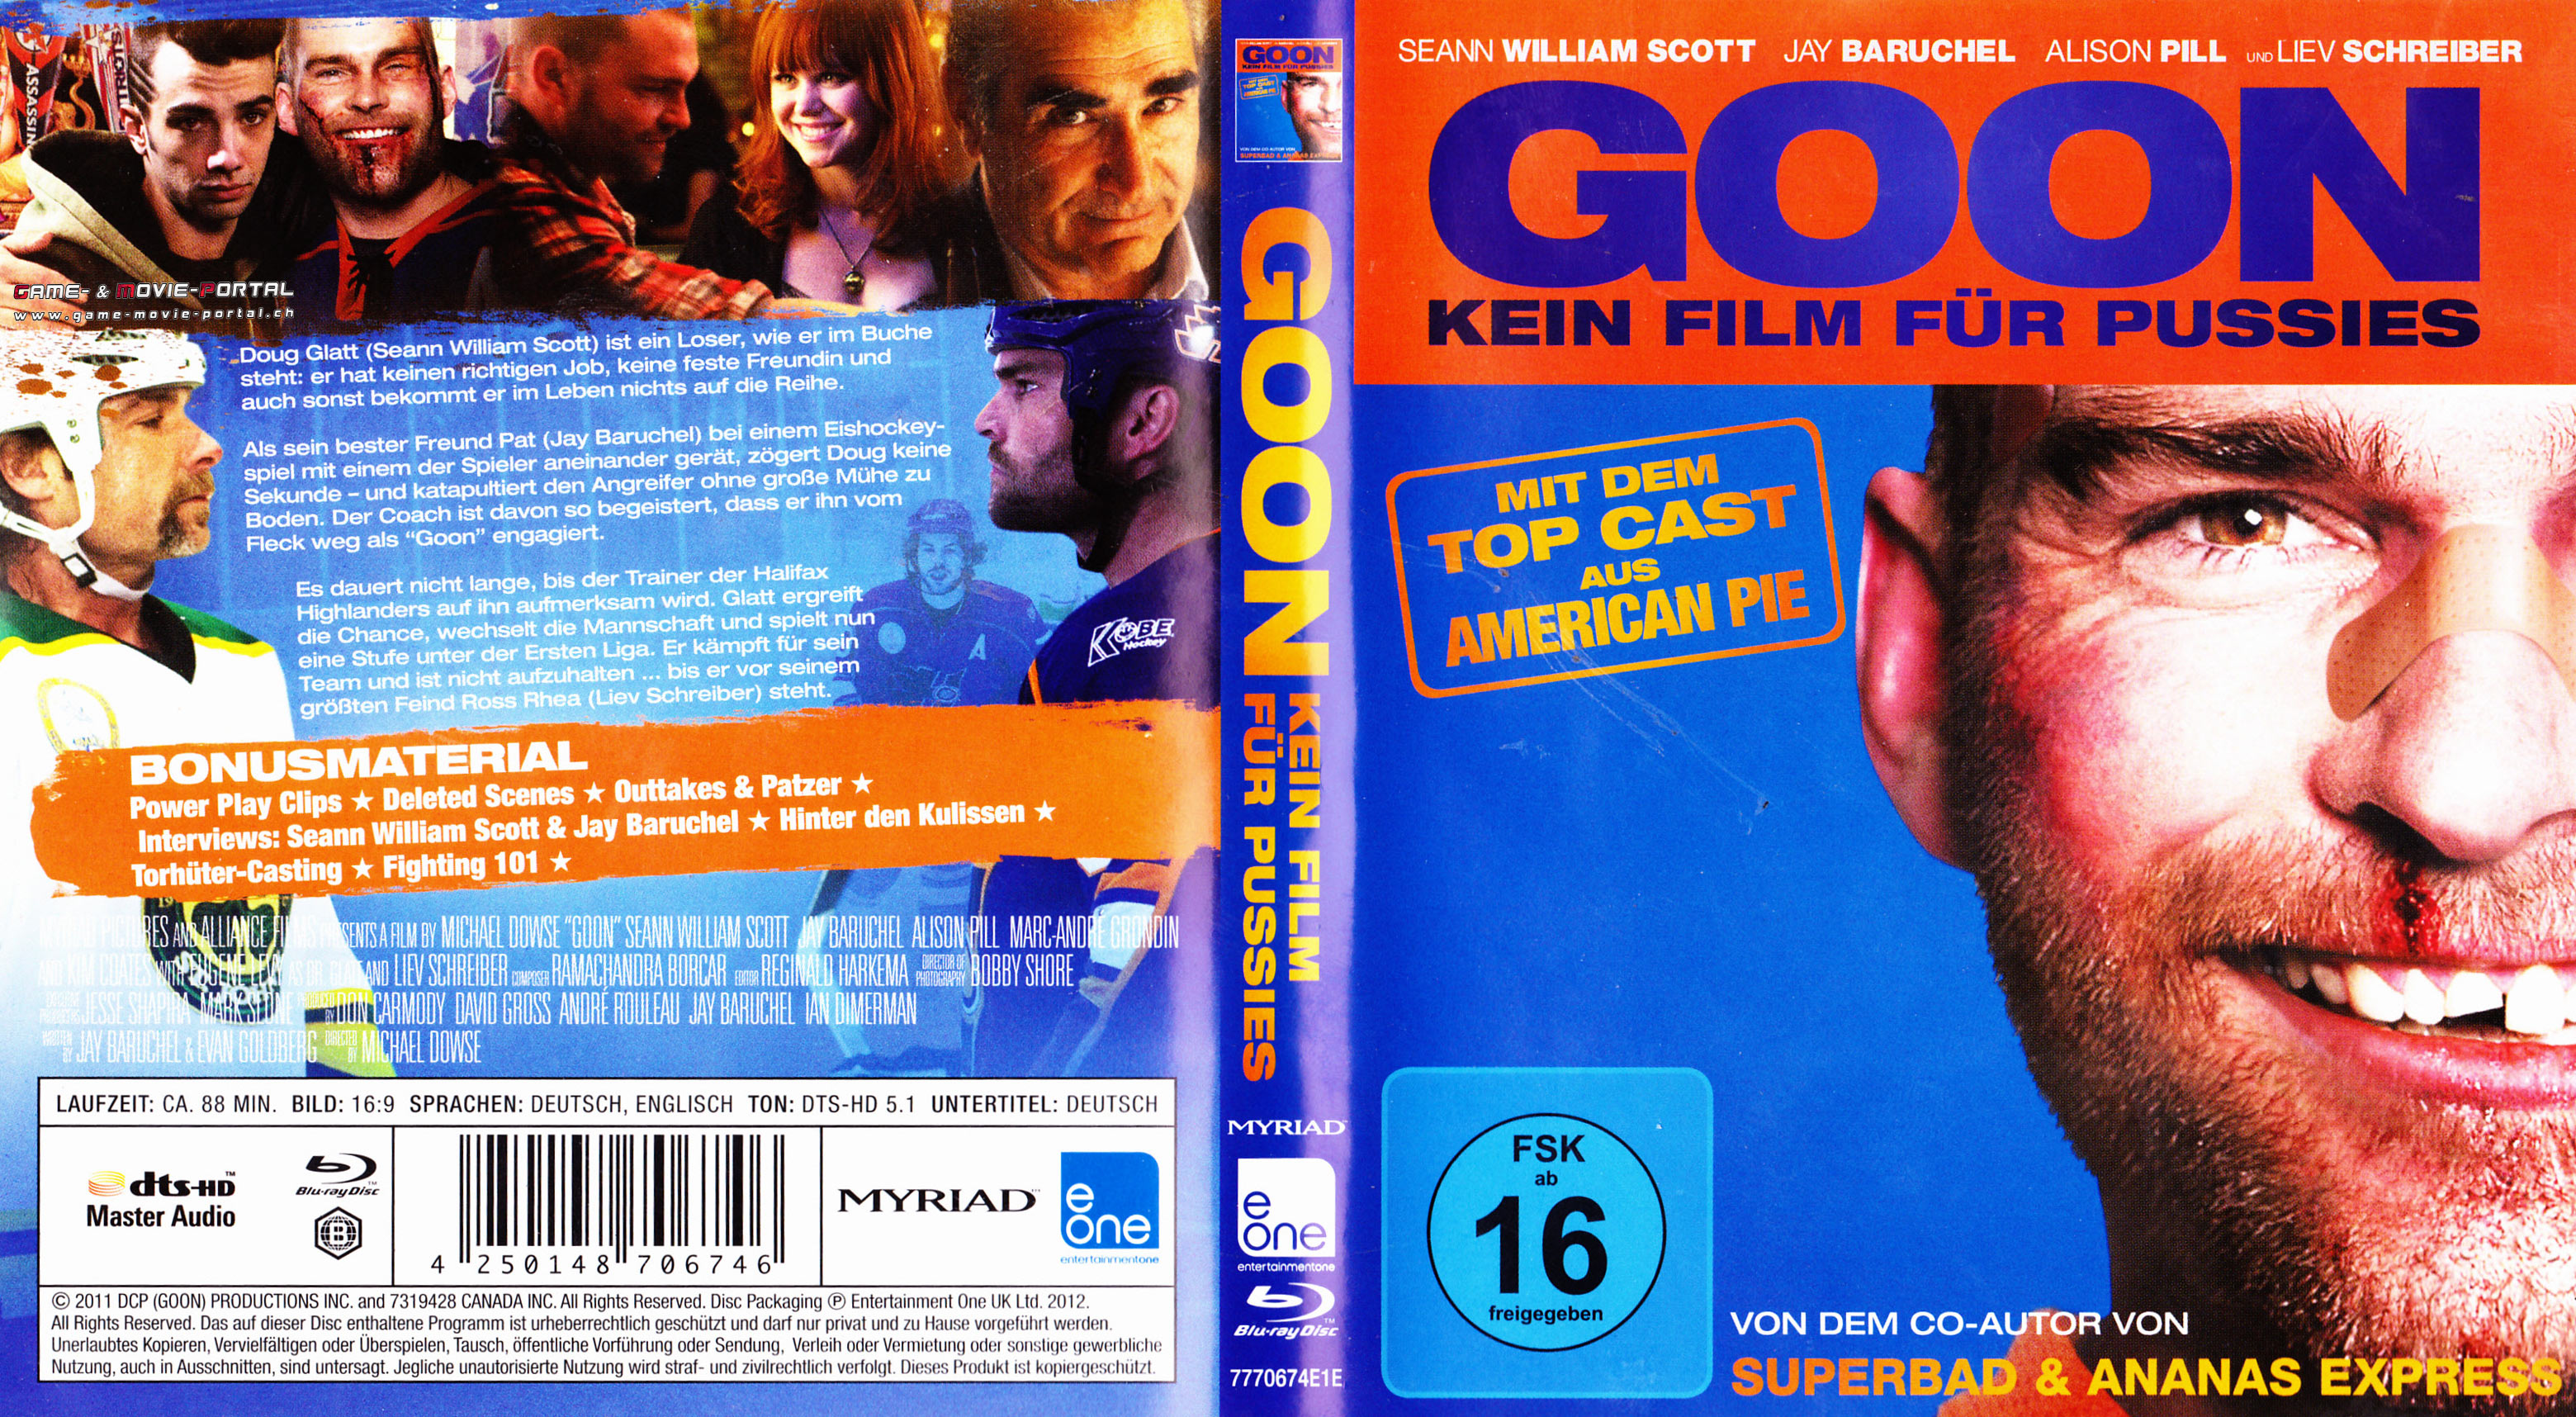 Gmp Goon Kein Film Für Pussies Cover Packshot Poster In High